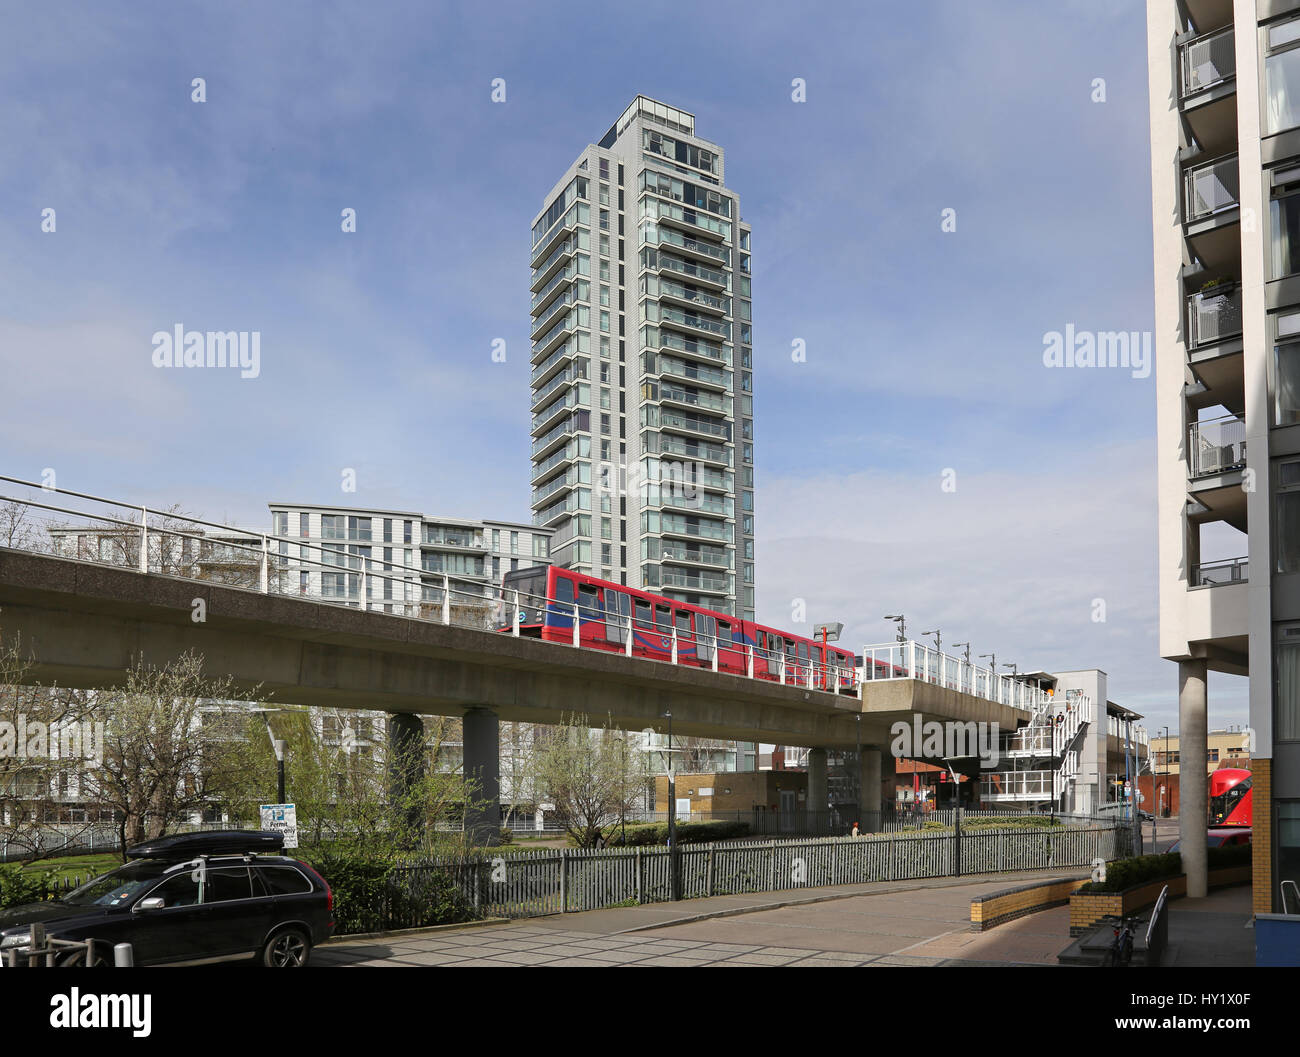 Deptford Bridge Station on London's Docklands Light Railway. Tracks span the A2 London to Dover road. Shows - Stock Image